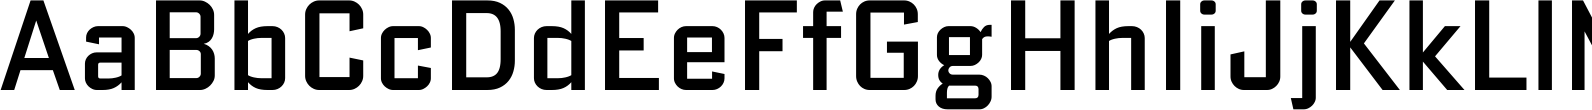 Bank Gothic Pro Medium Cond Font